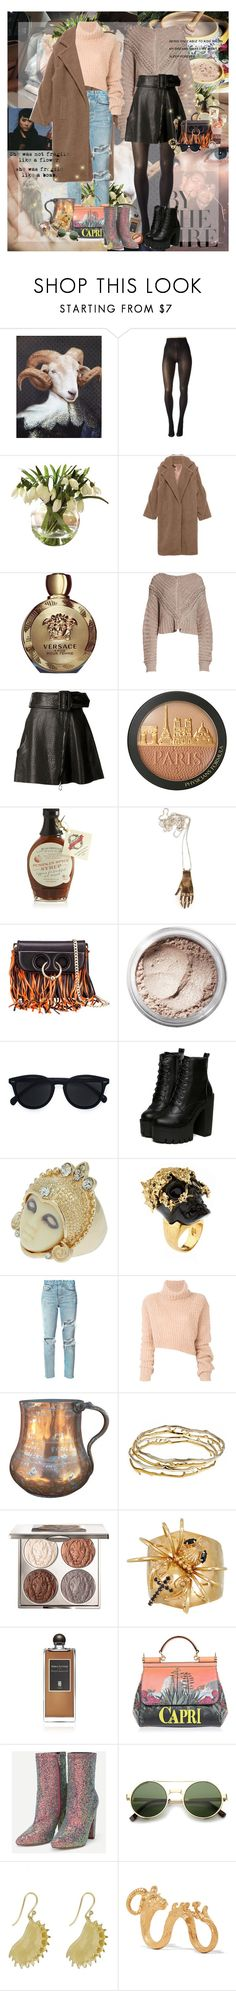 """Caramel Accent"" by lady-redrise ❤ liked on Polyvore featuring ibride, Pretty Polly, Versace, rag & bone, Carven, Crate and Barrel, Godiva, J.W. Anderson, Bare Escentuals and Le Specs"